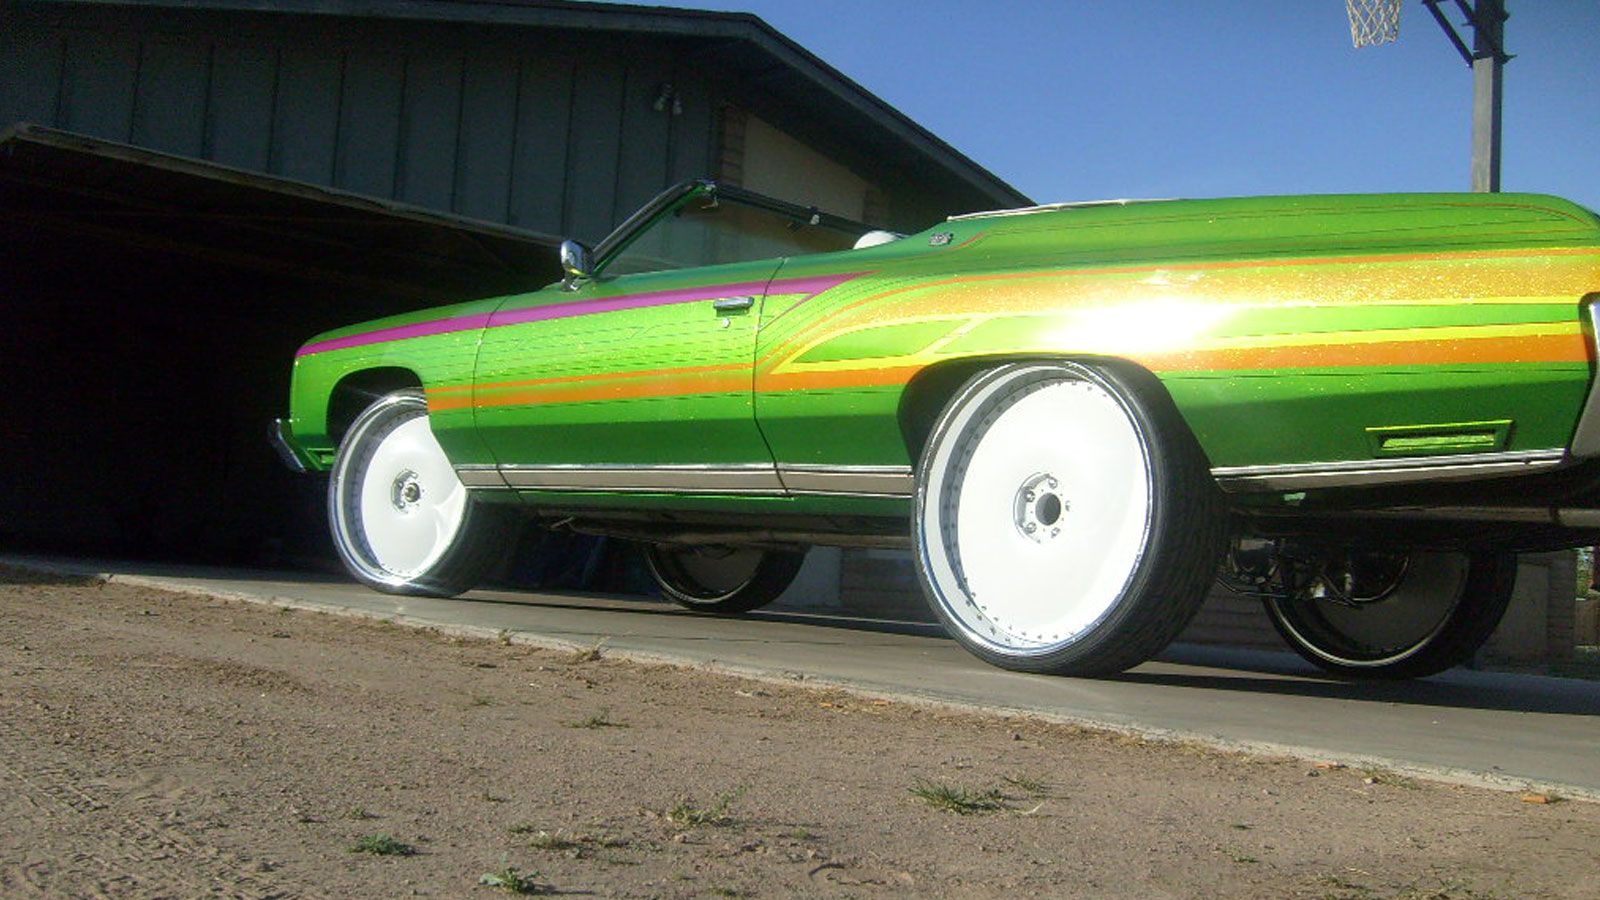 73 Impala For Sale Craigslist | Joy Studio Design Gallery ...